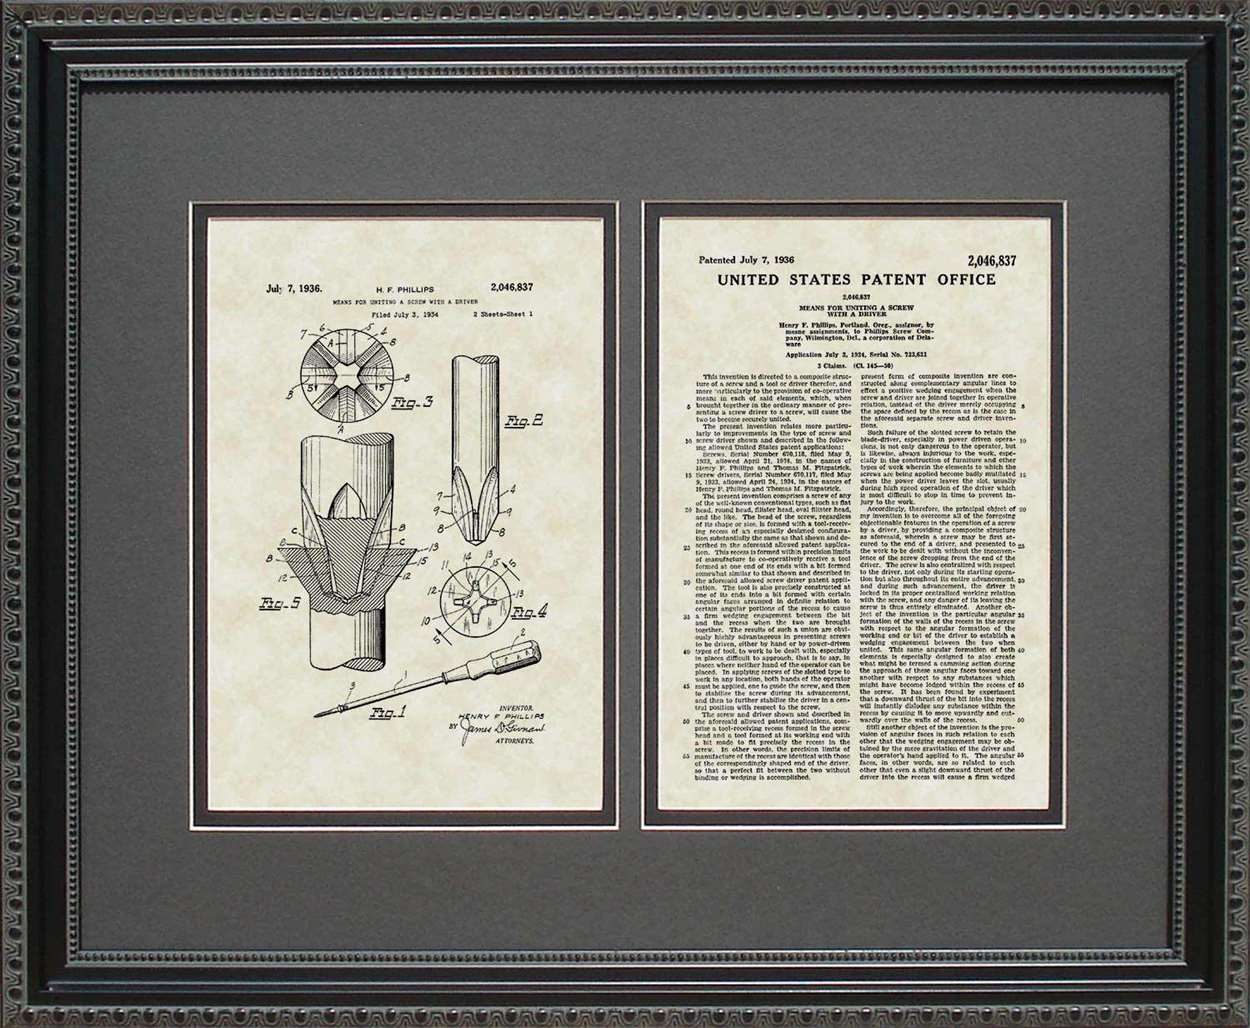 Phillips-Head Screwdriver Patent, Art & Copy, Phillips, 1936, 16x20